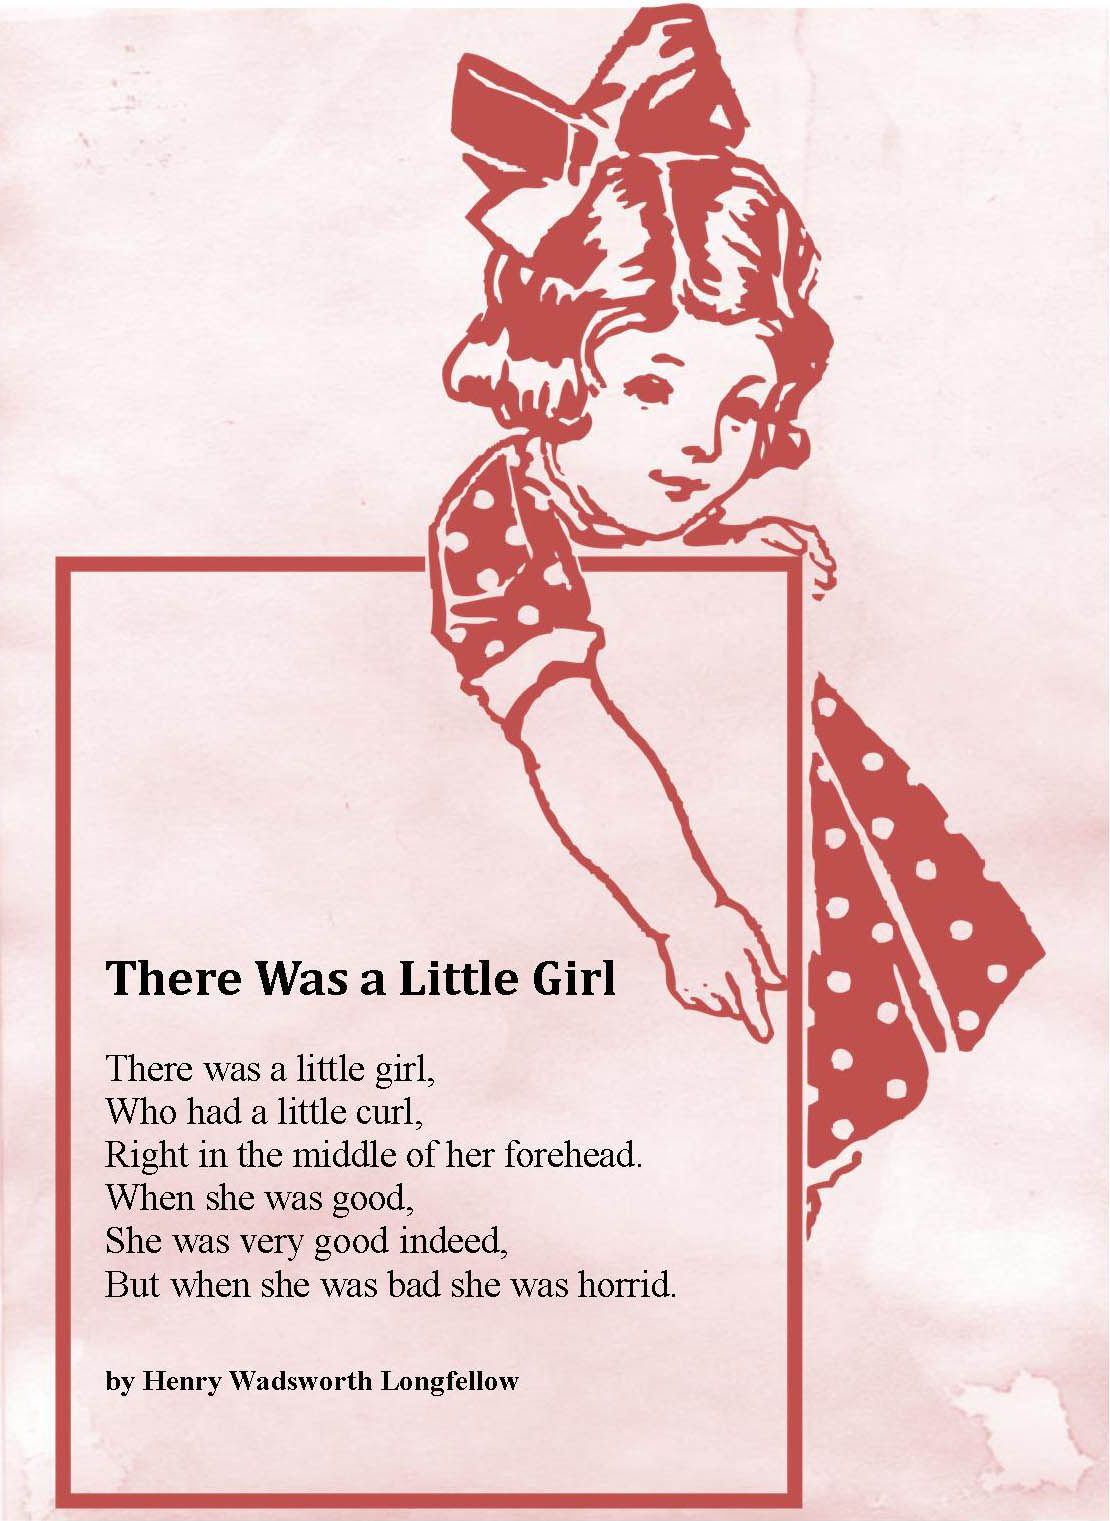 There was a little girl by henry wadsworth longfellow lyrics there was a little girl by henry wadsworth longfellow hexwebz Image collections